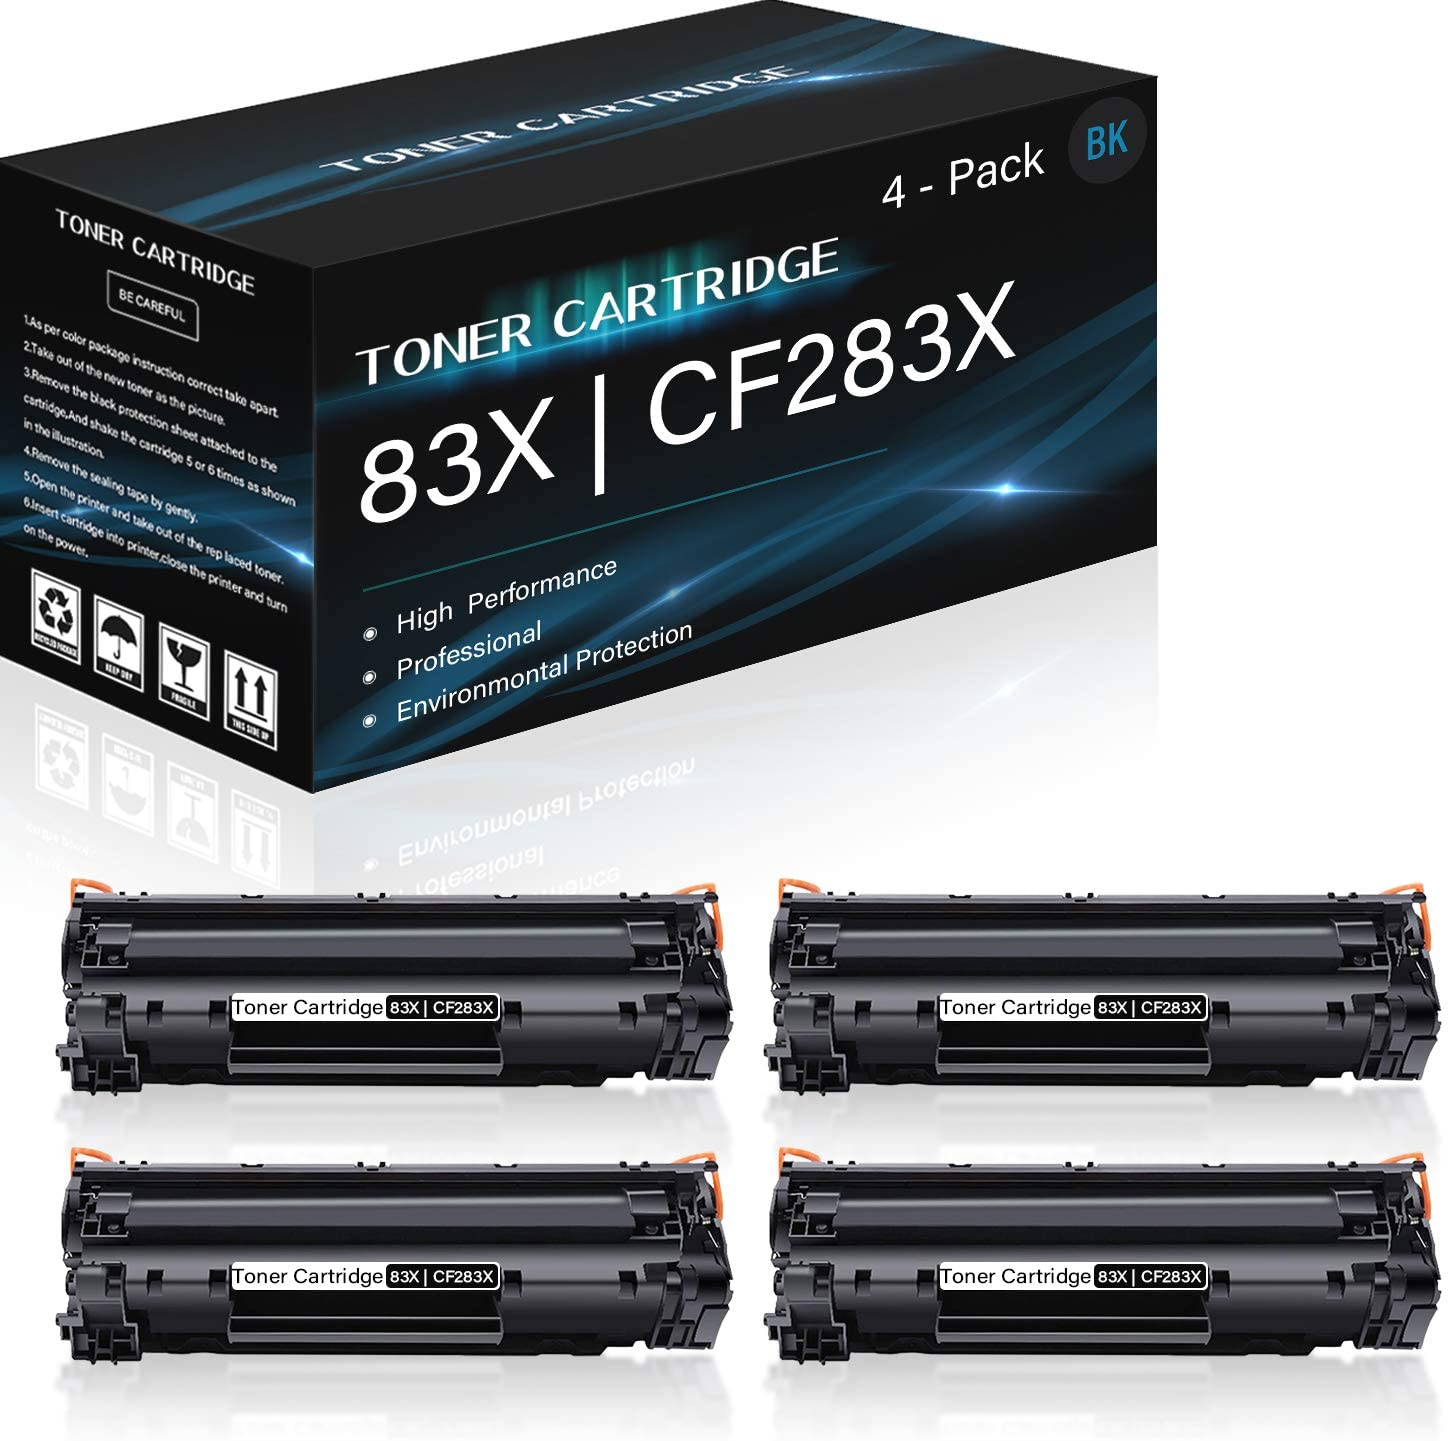 4 Pack 83X | CF283X (Black) Compatible High Yield Toner Cartridge Replacement for HP Laserjet Pro MFP (M225dn M225dw M125a M125nw M126a M126nw M125ra M128fw M127fs) Printers,Sold by Thurink.